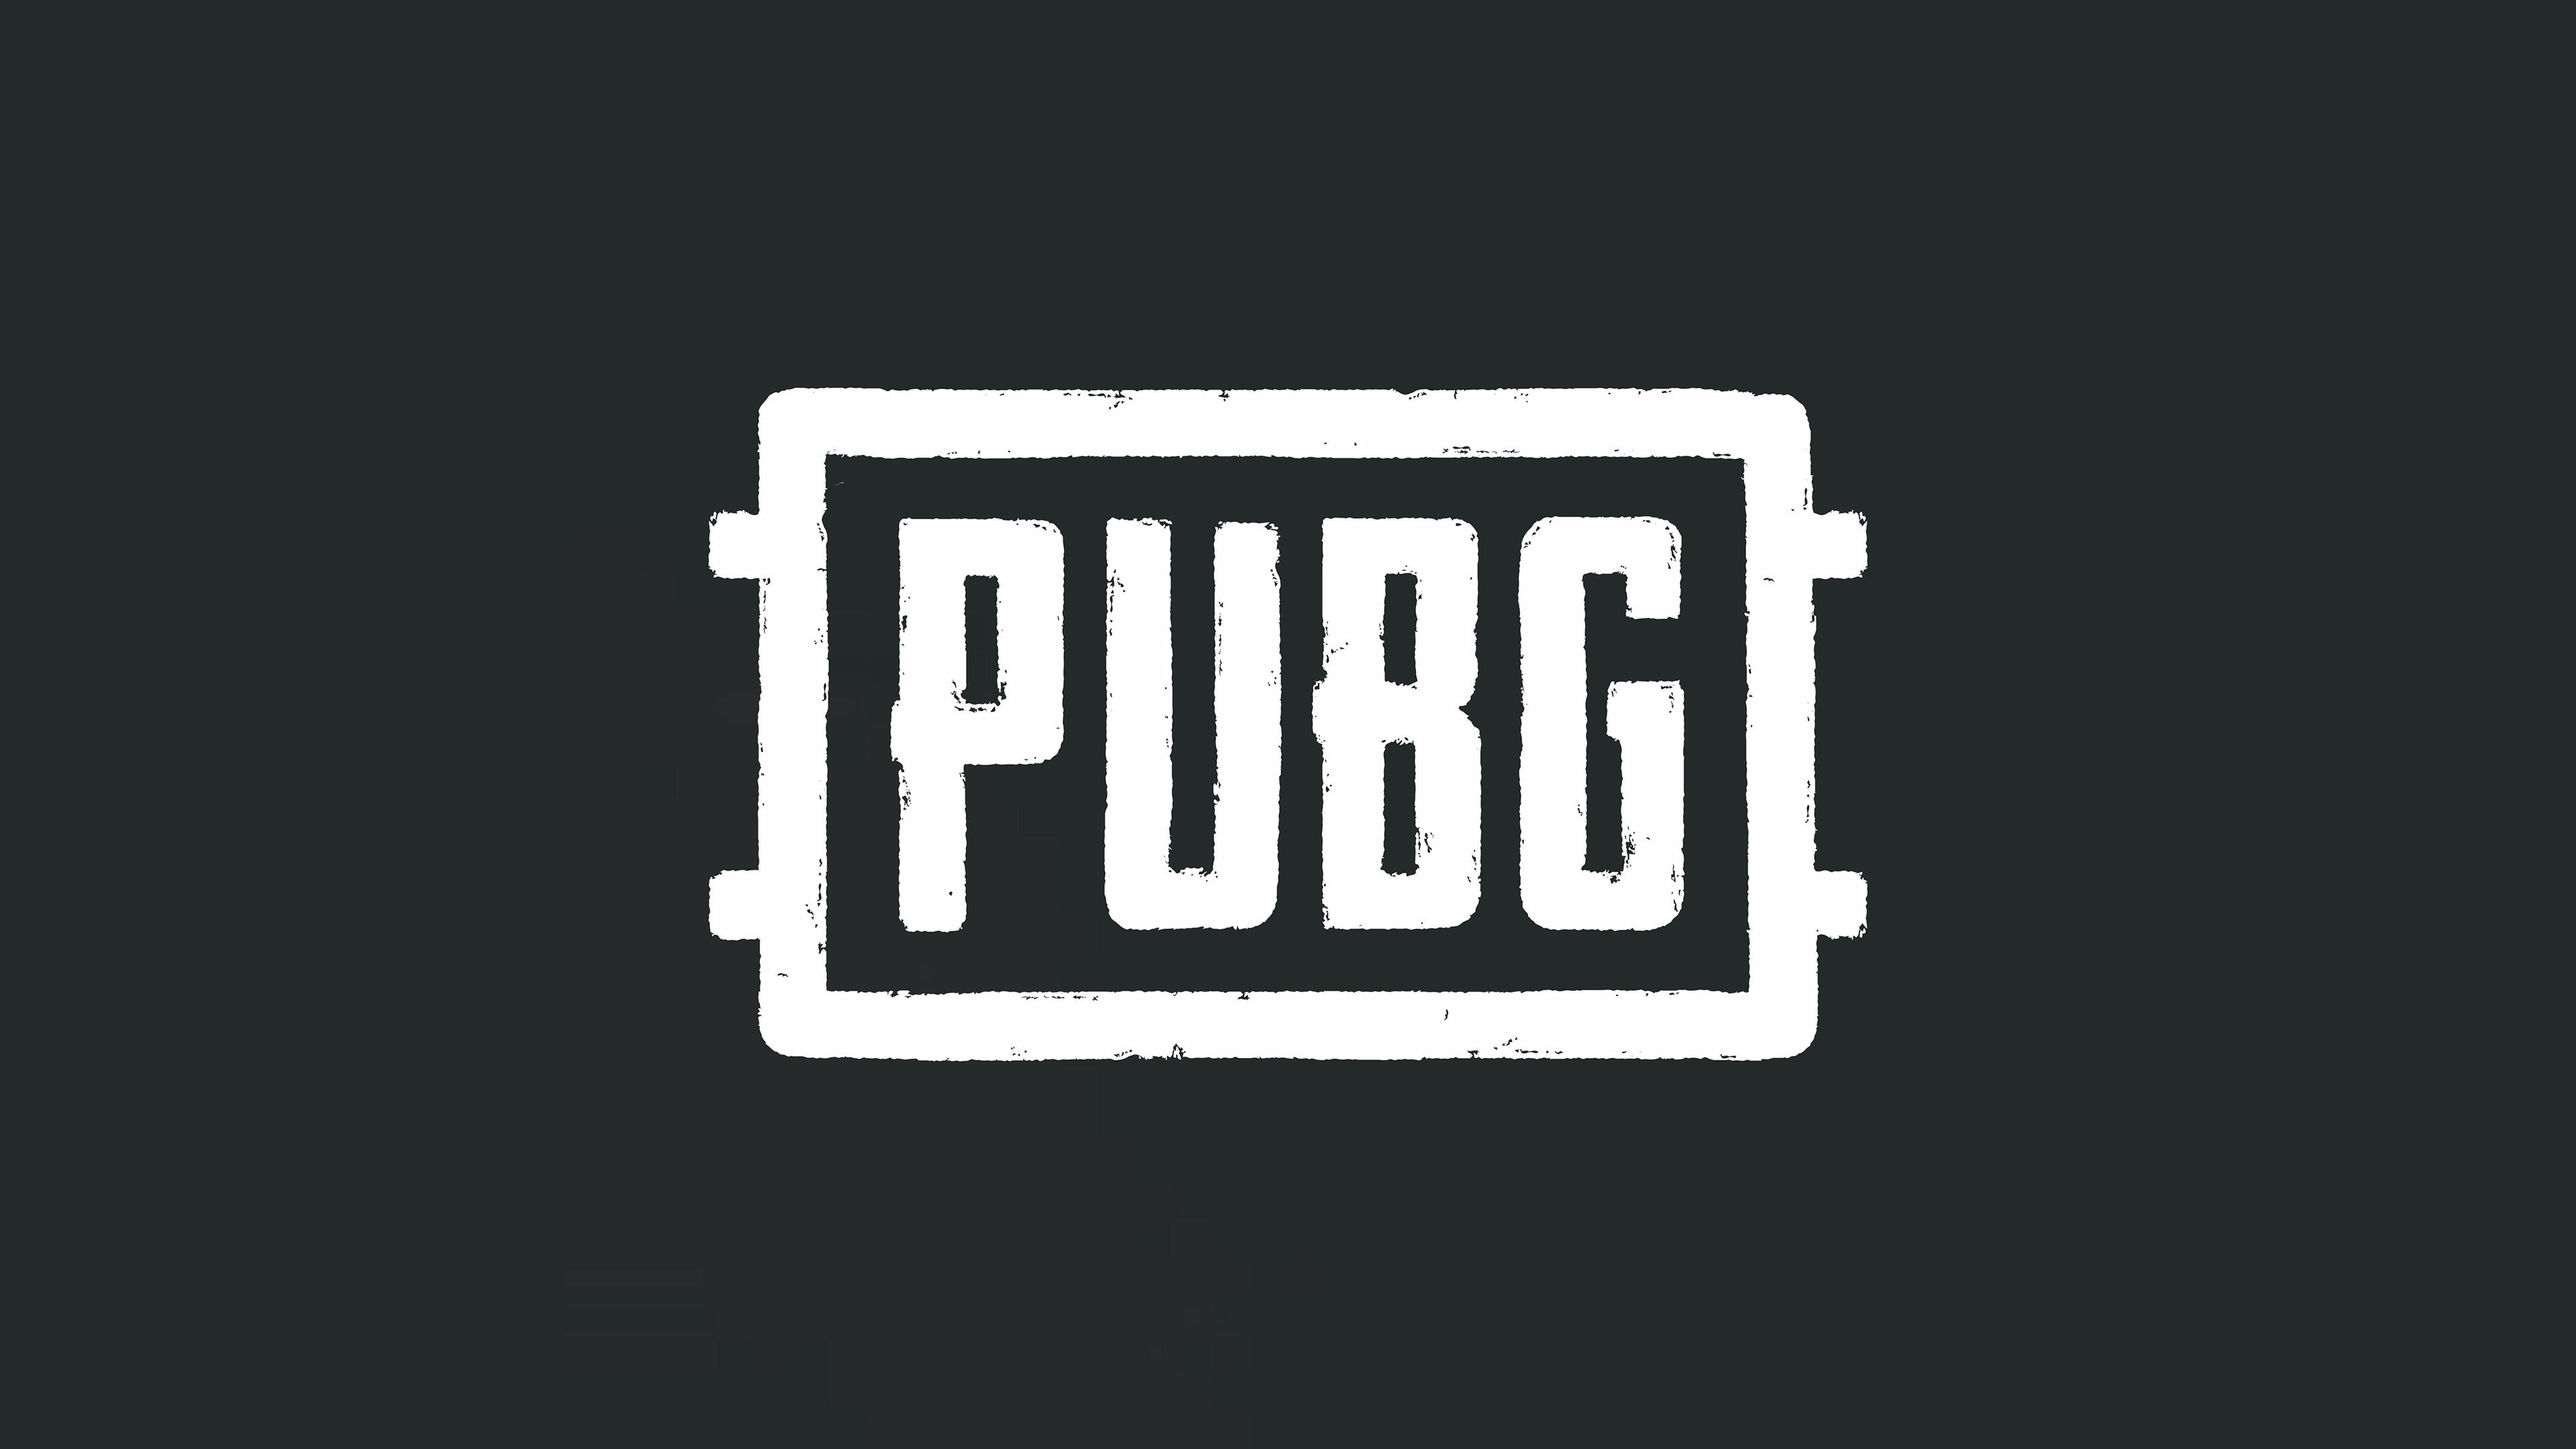 Pubg Game Logo 4k Pubg Wallpapers Playerunknowns Battlegrounds Wallpapers Logo Wallpapers Hd Wallpapers Games Wallp Game Logo Logo Wallpaper Hd Mobile Logo